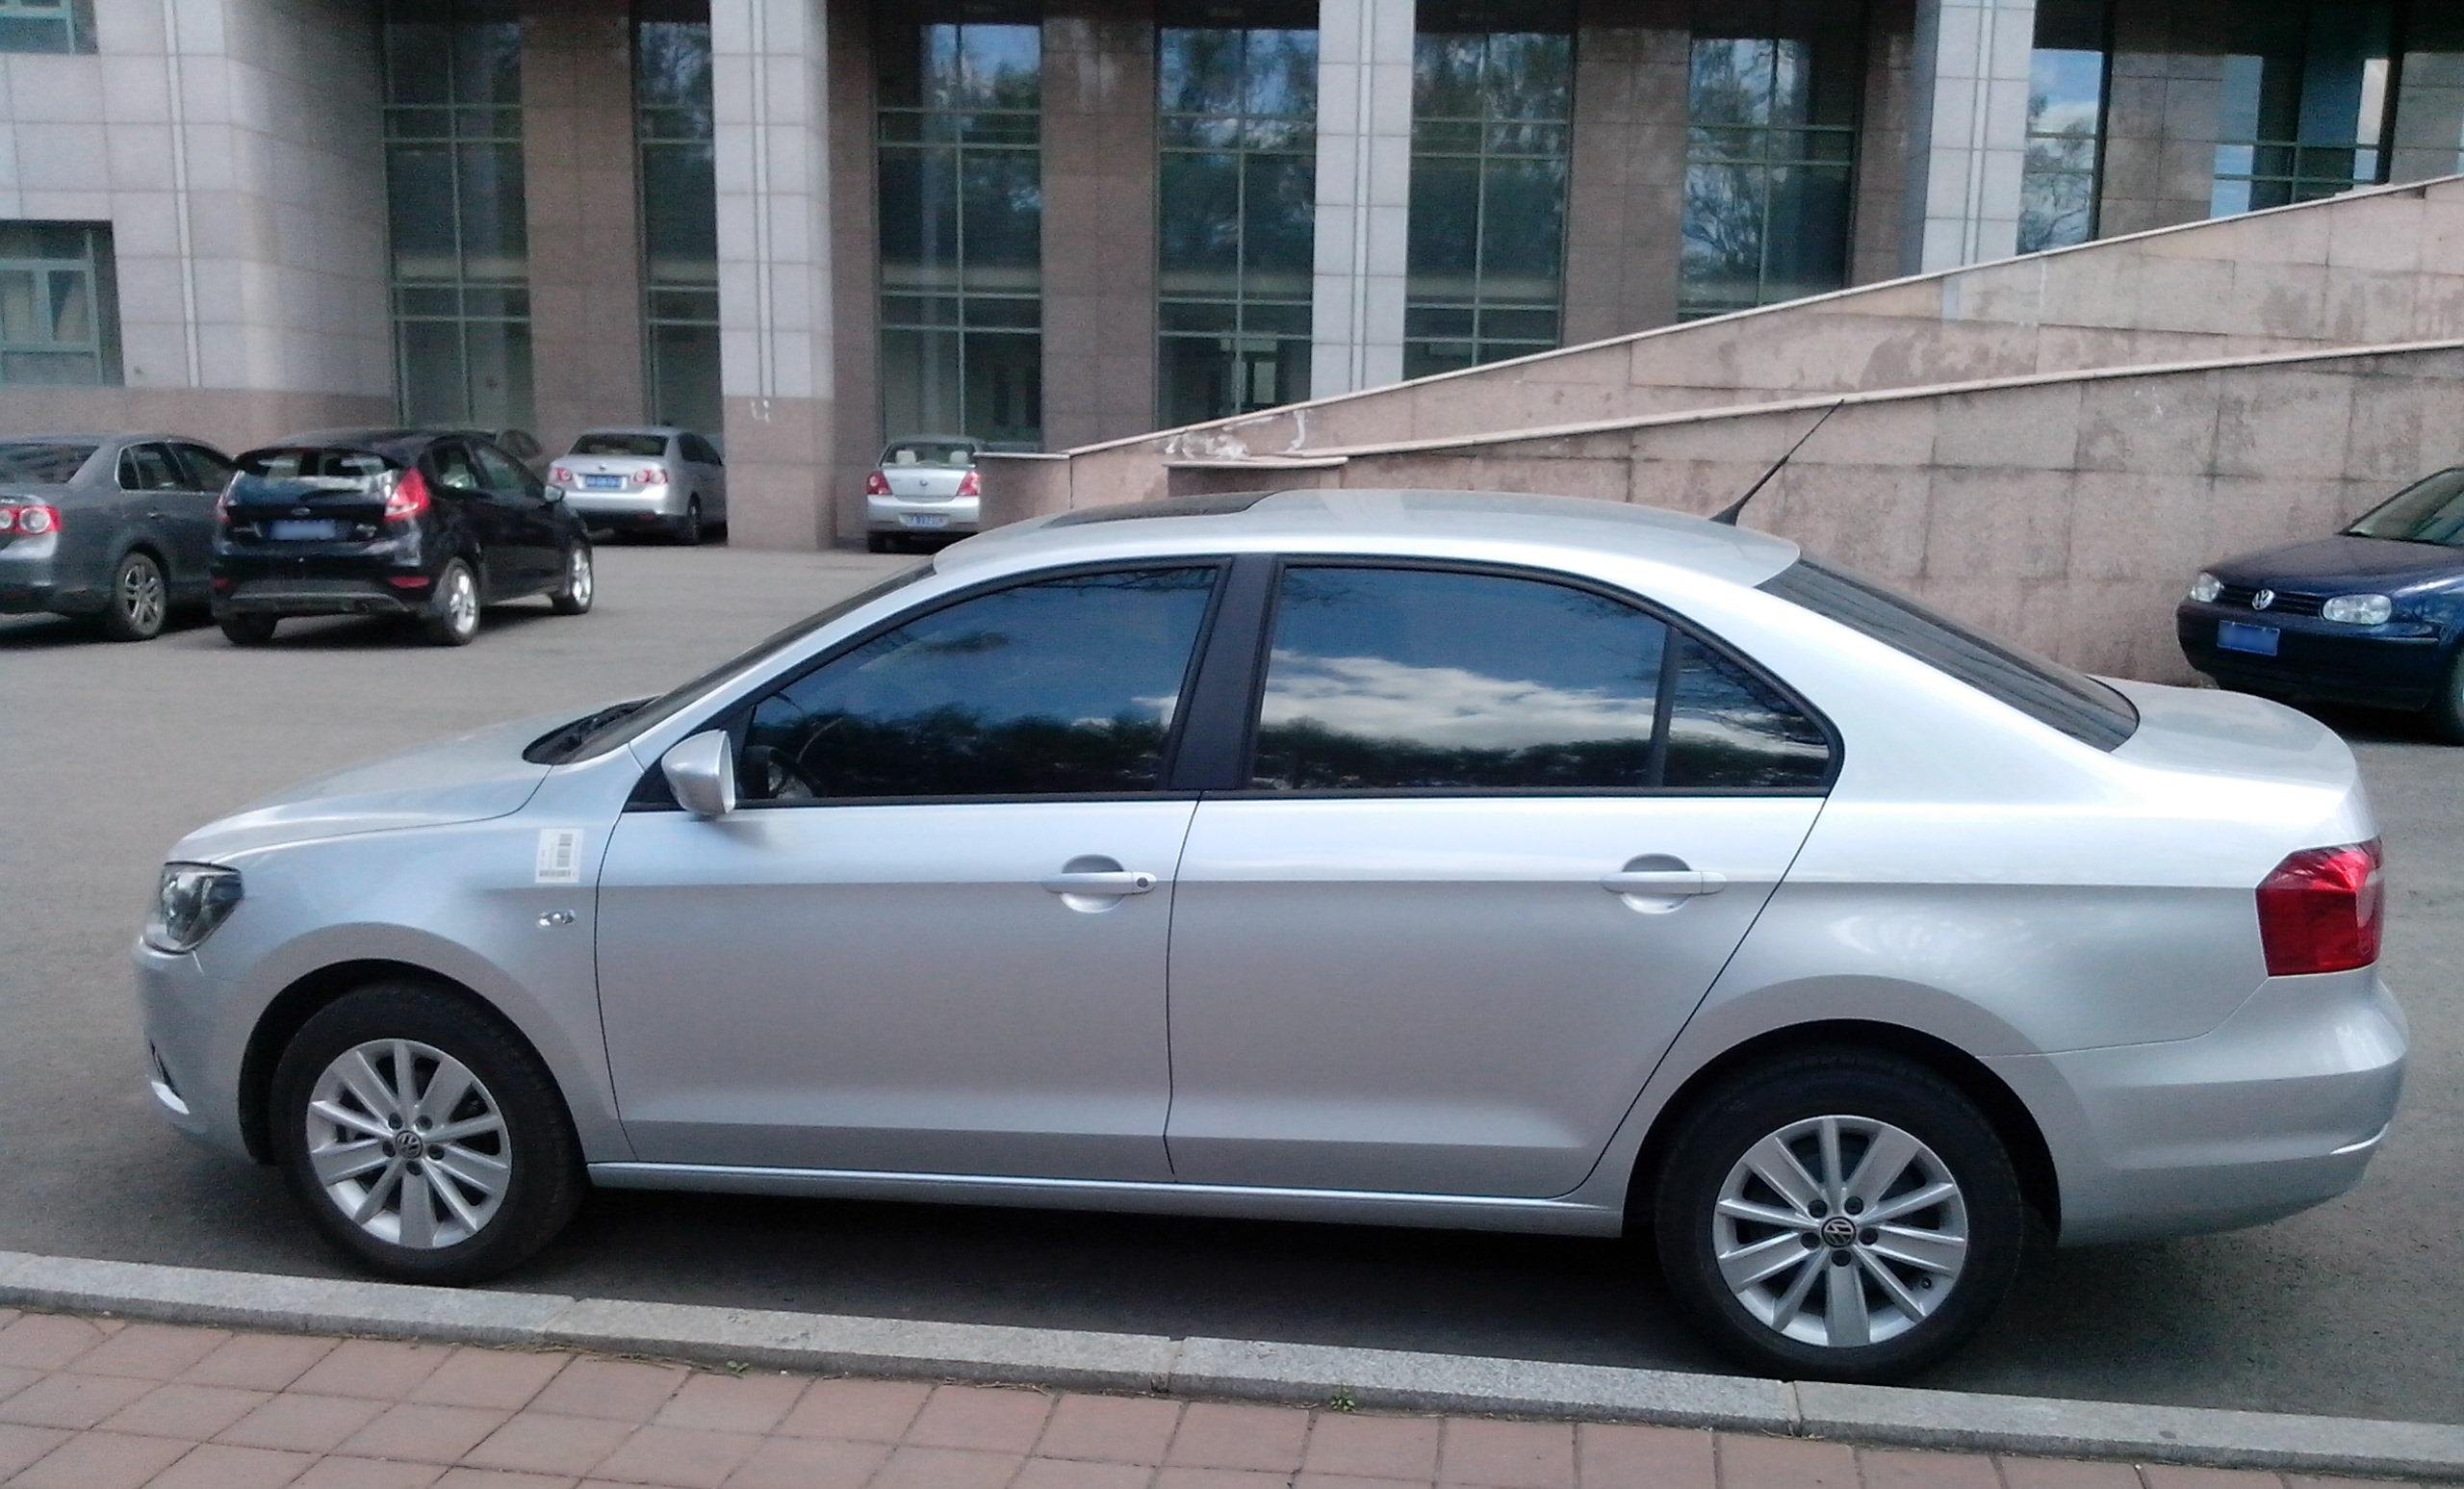 File:Volkswagen Jetta 2013 (Chinese market), side view.jpg ...